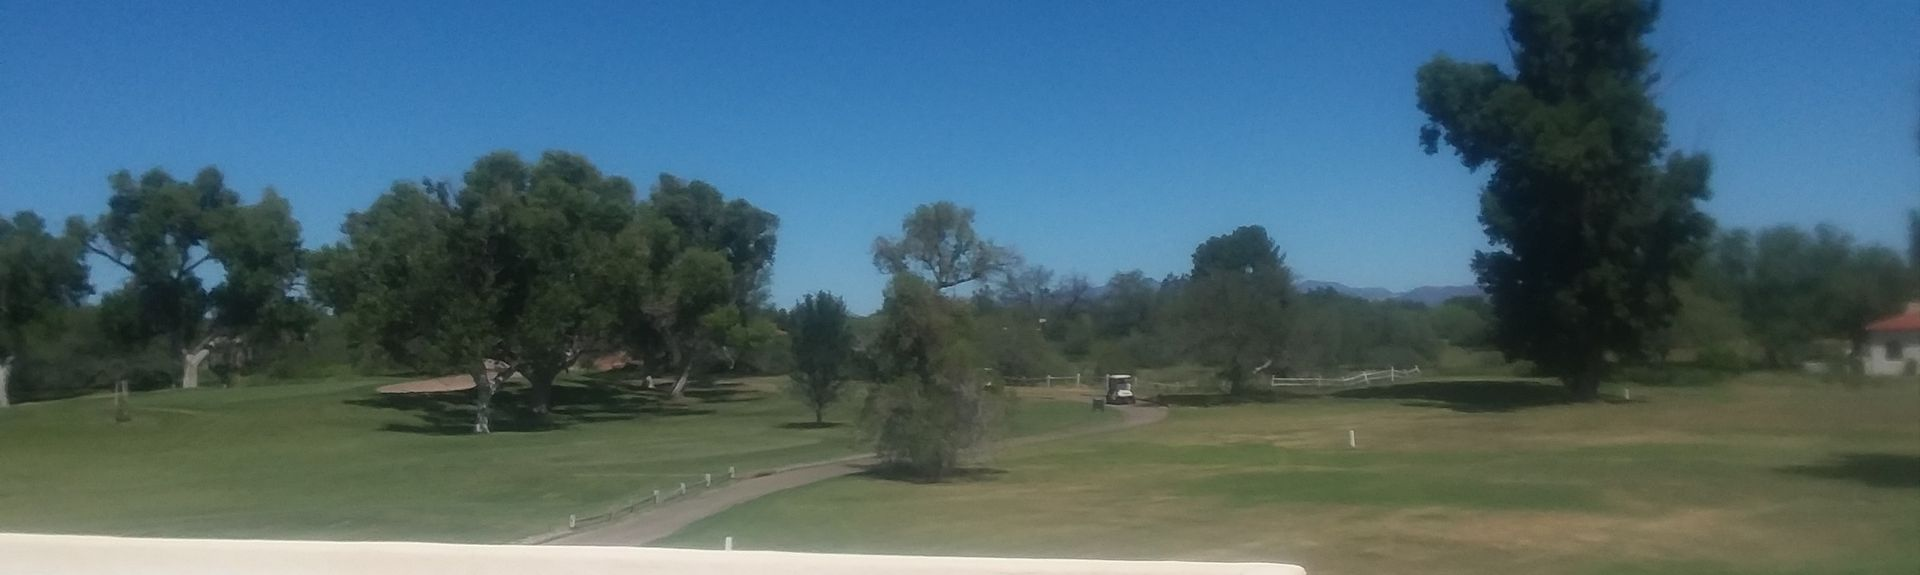 Haven Golf Course, Green Valley, Arizona, United States of America